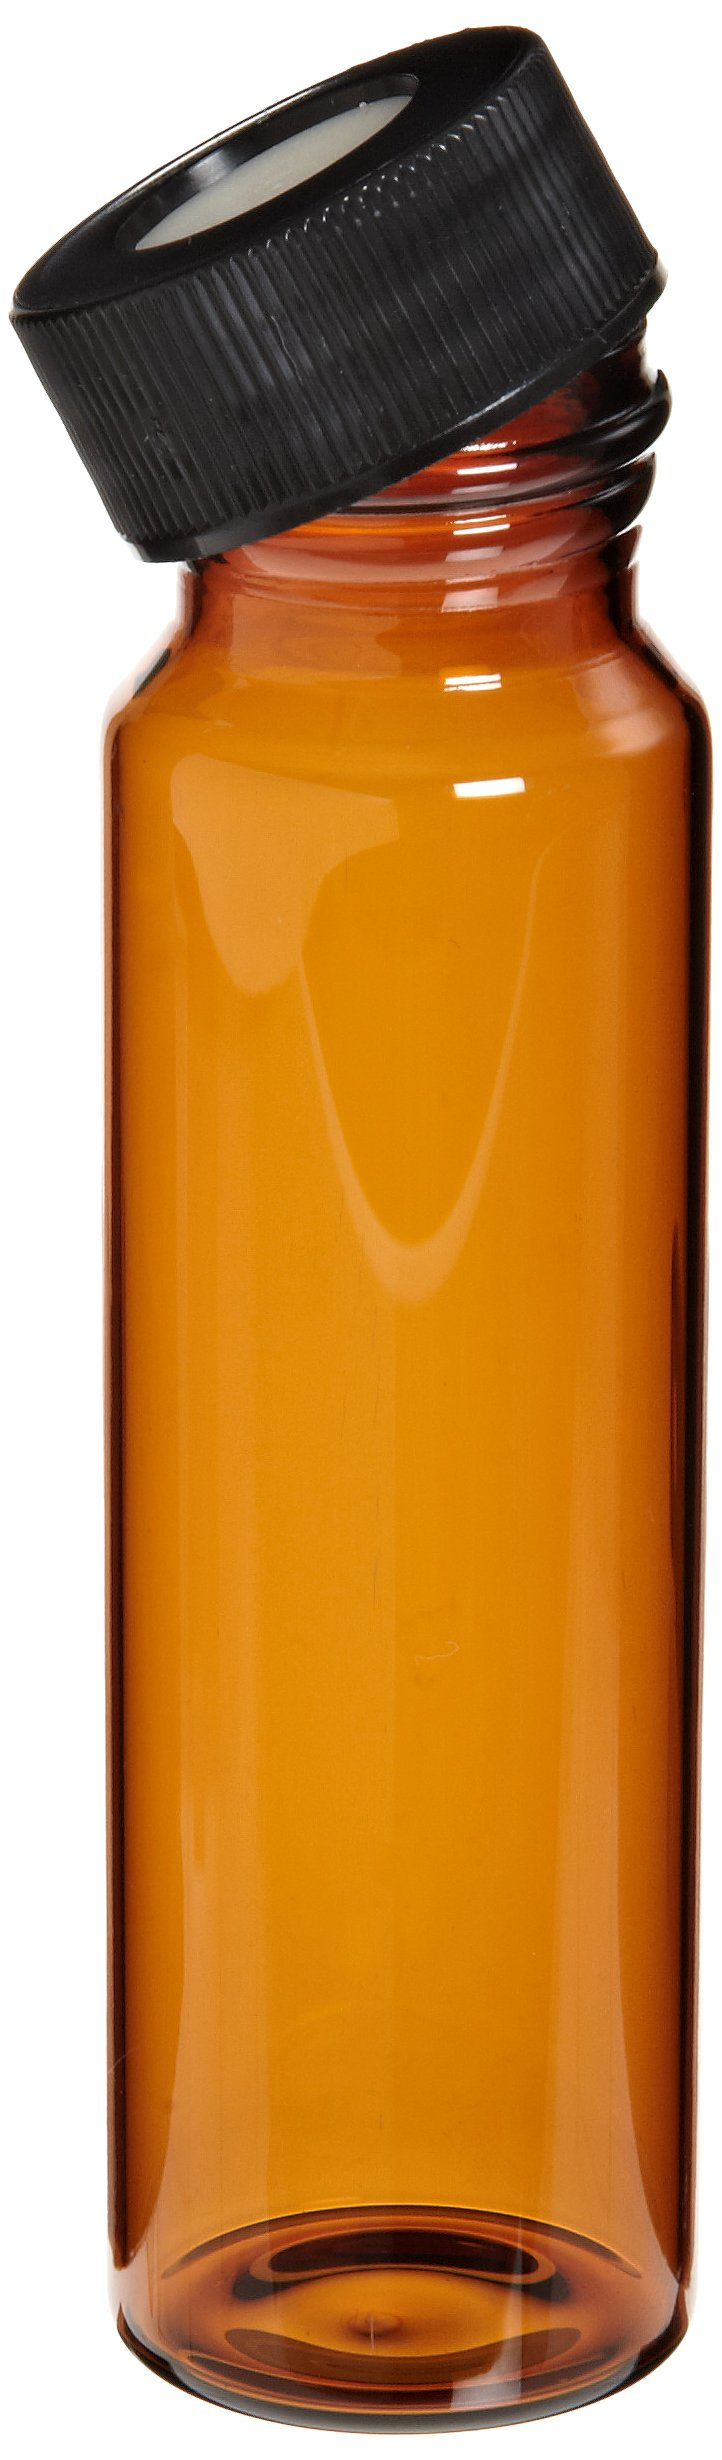 Thomas 9A130 Glass 40mL Amber Assemble Vial, with Tomcap Liner (Pack of 72)